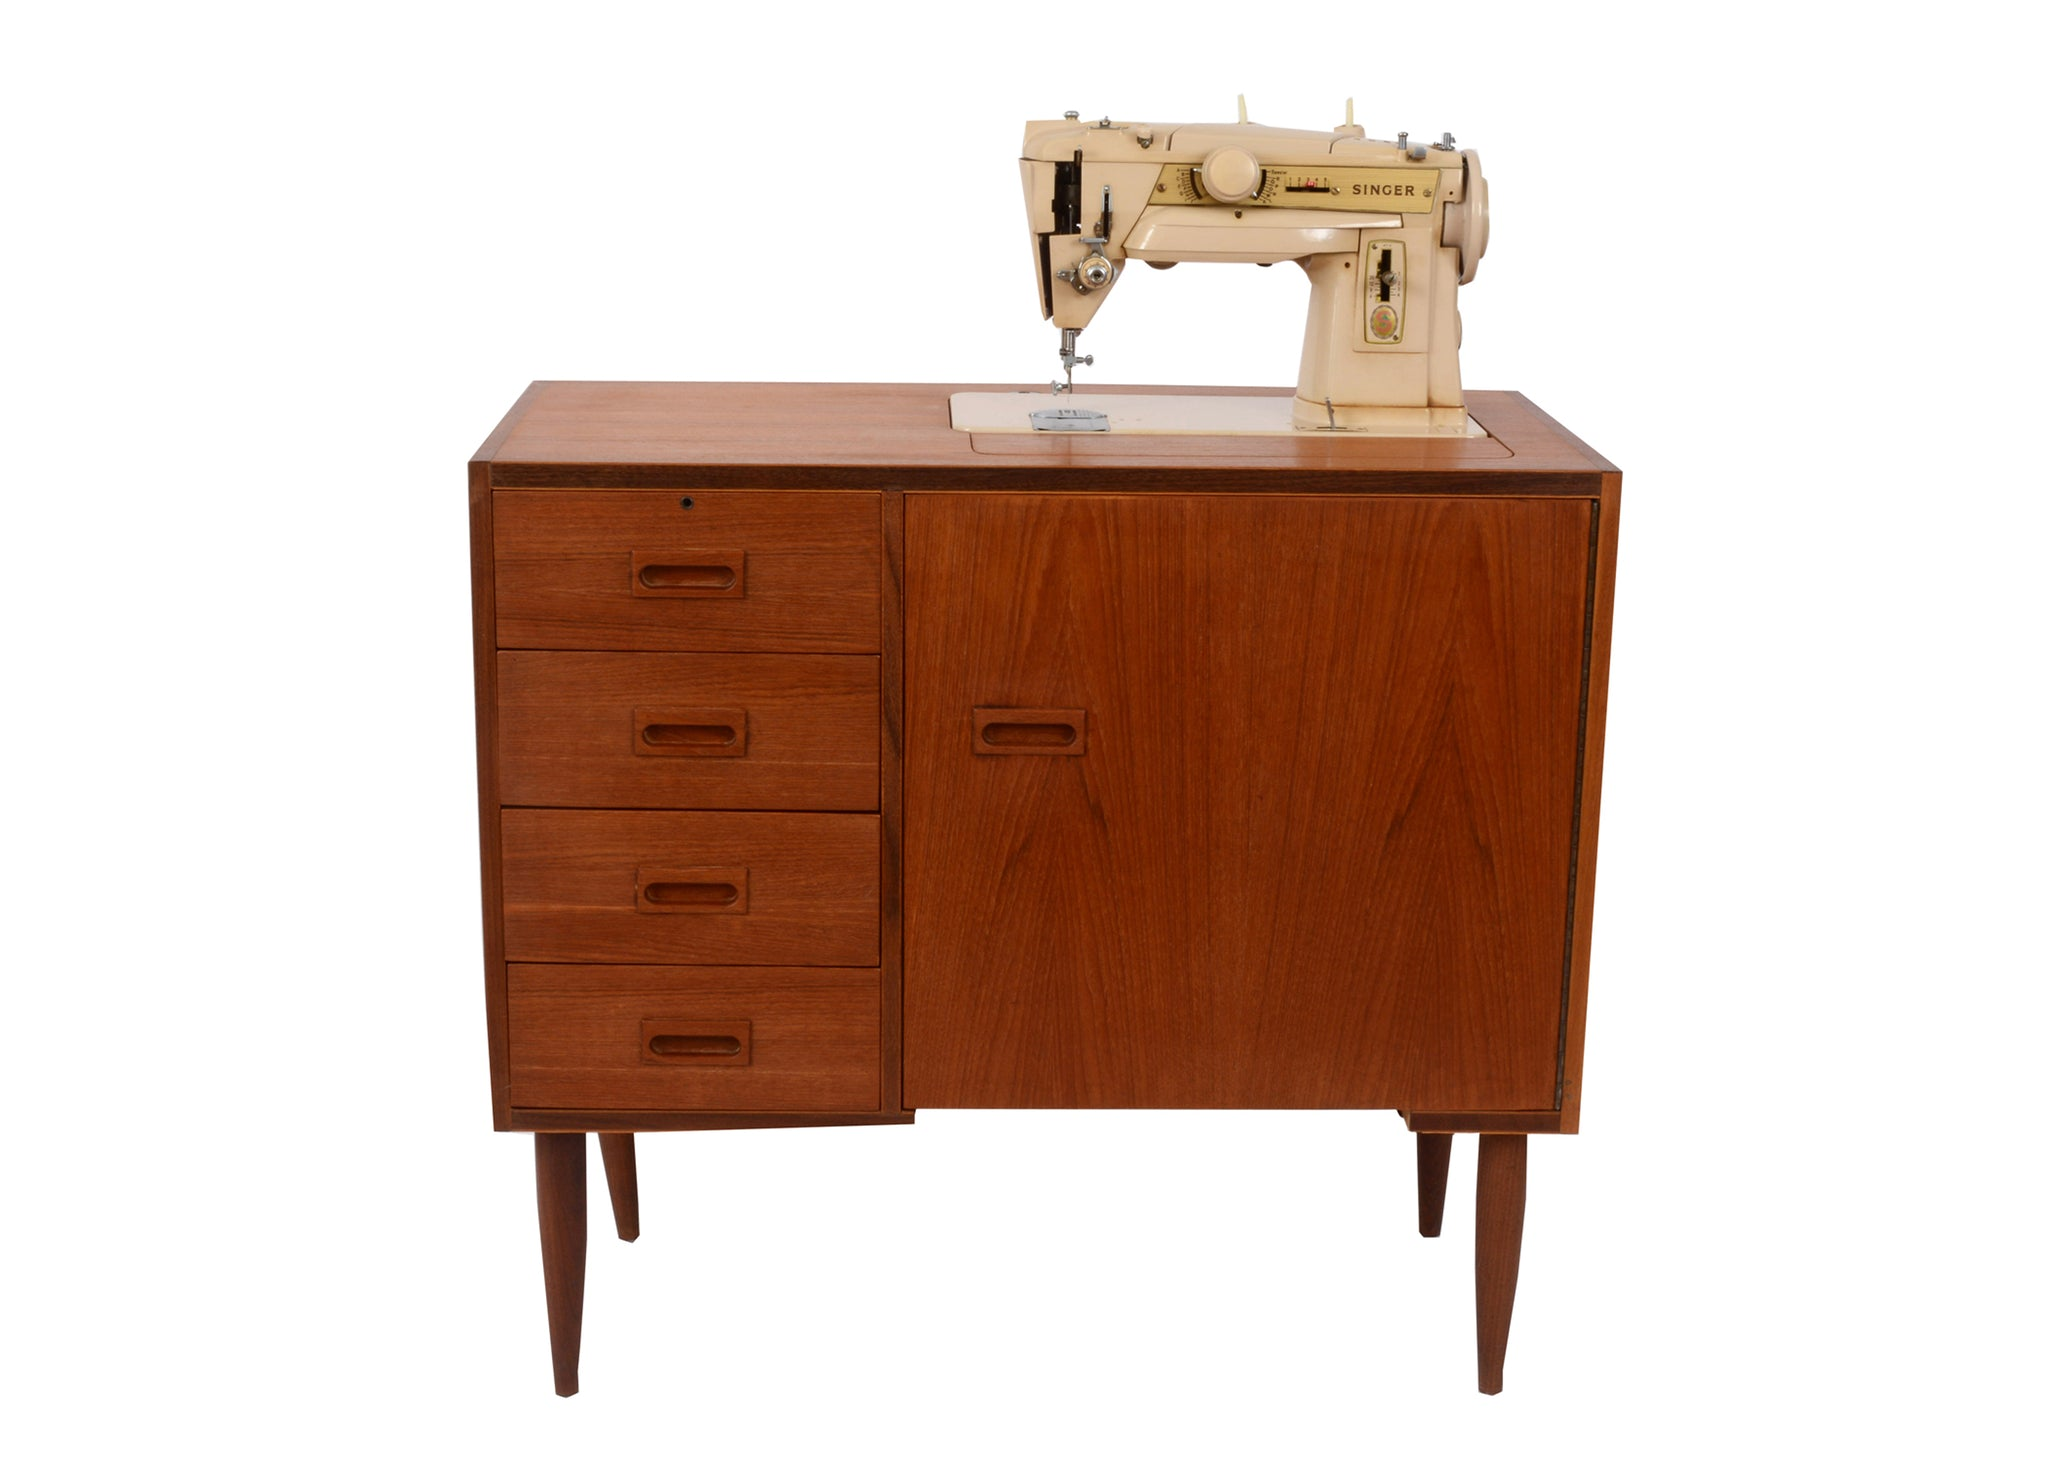 Singer sewing Machine mid century sideboard retro teak g plan ireland